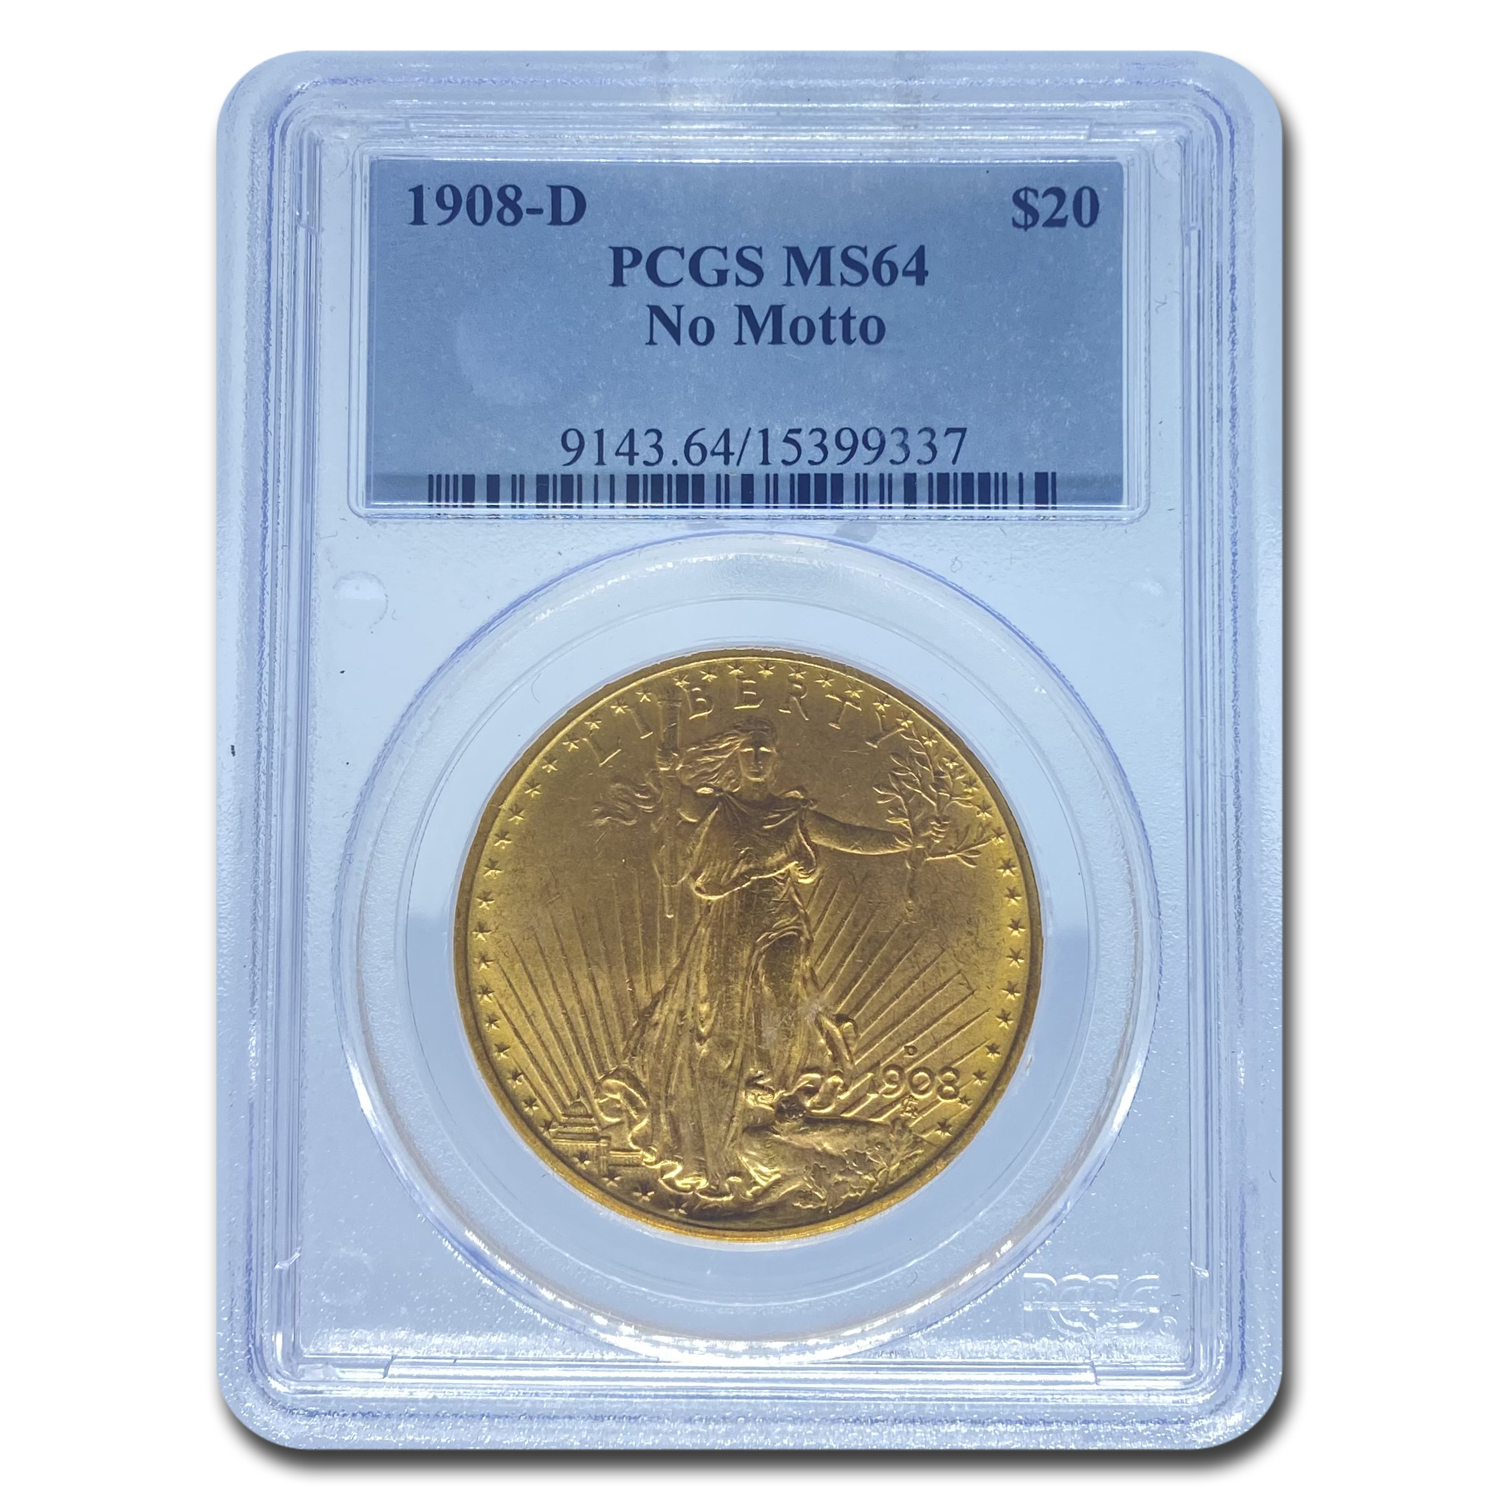 1908-D $20 St. Gaudens Gold No Motto MS-64 PCGS